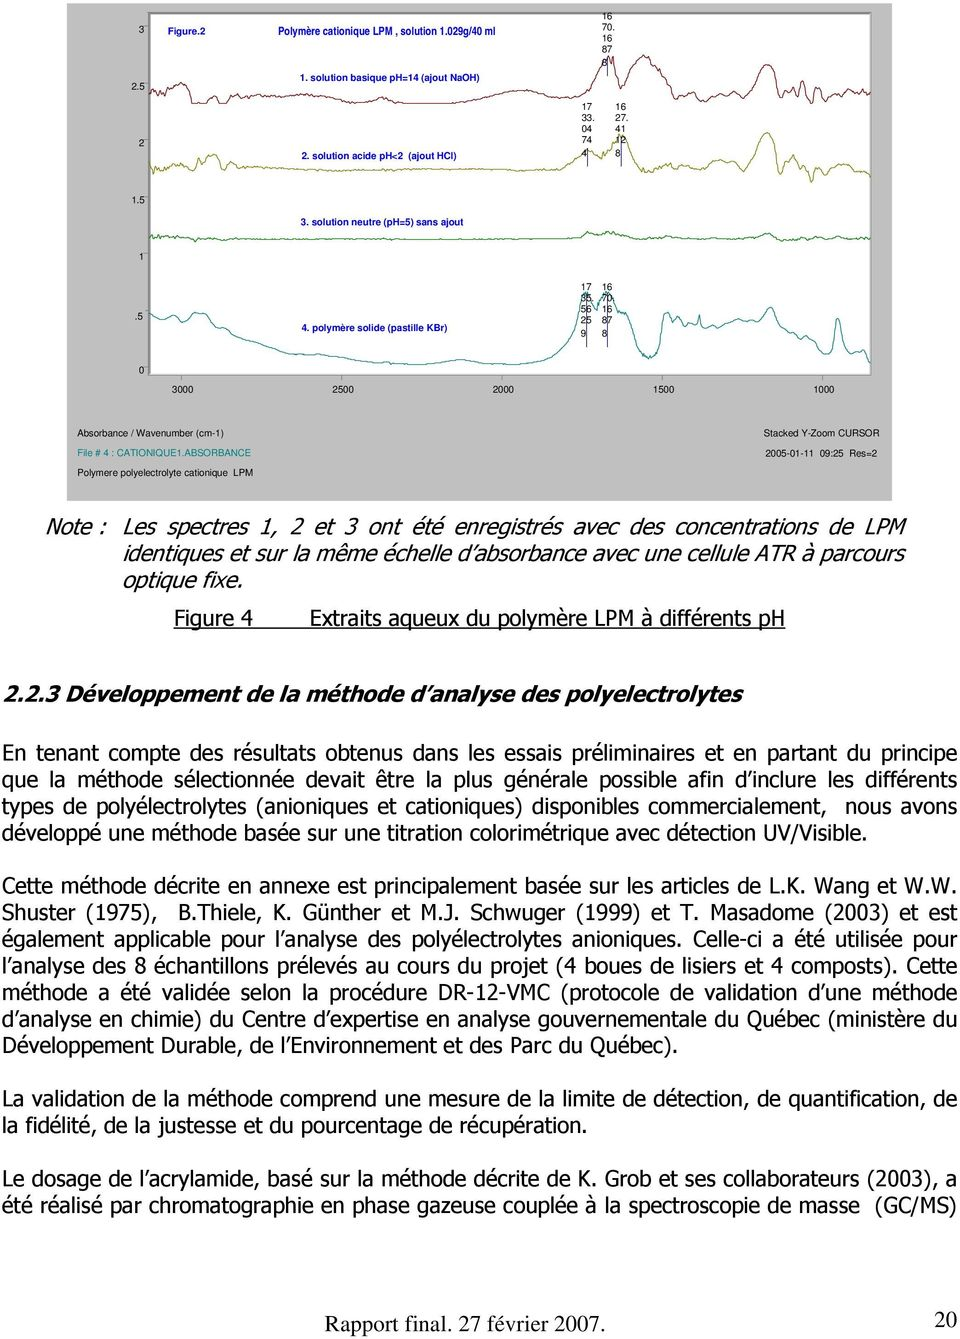 ABSORBANCE Polymere polyelectrolyte cationique LPM Stacked Y-Zoom CURSOR 2005-01-11 09:25 Res=2 Note : Les spectres 1, 2 et 3 ont été enregistrés avec des concentrations de LPM identiques et sur la